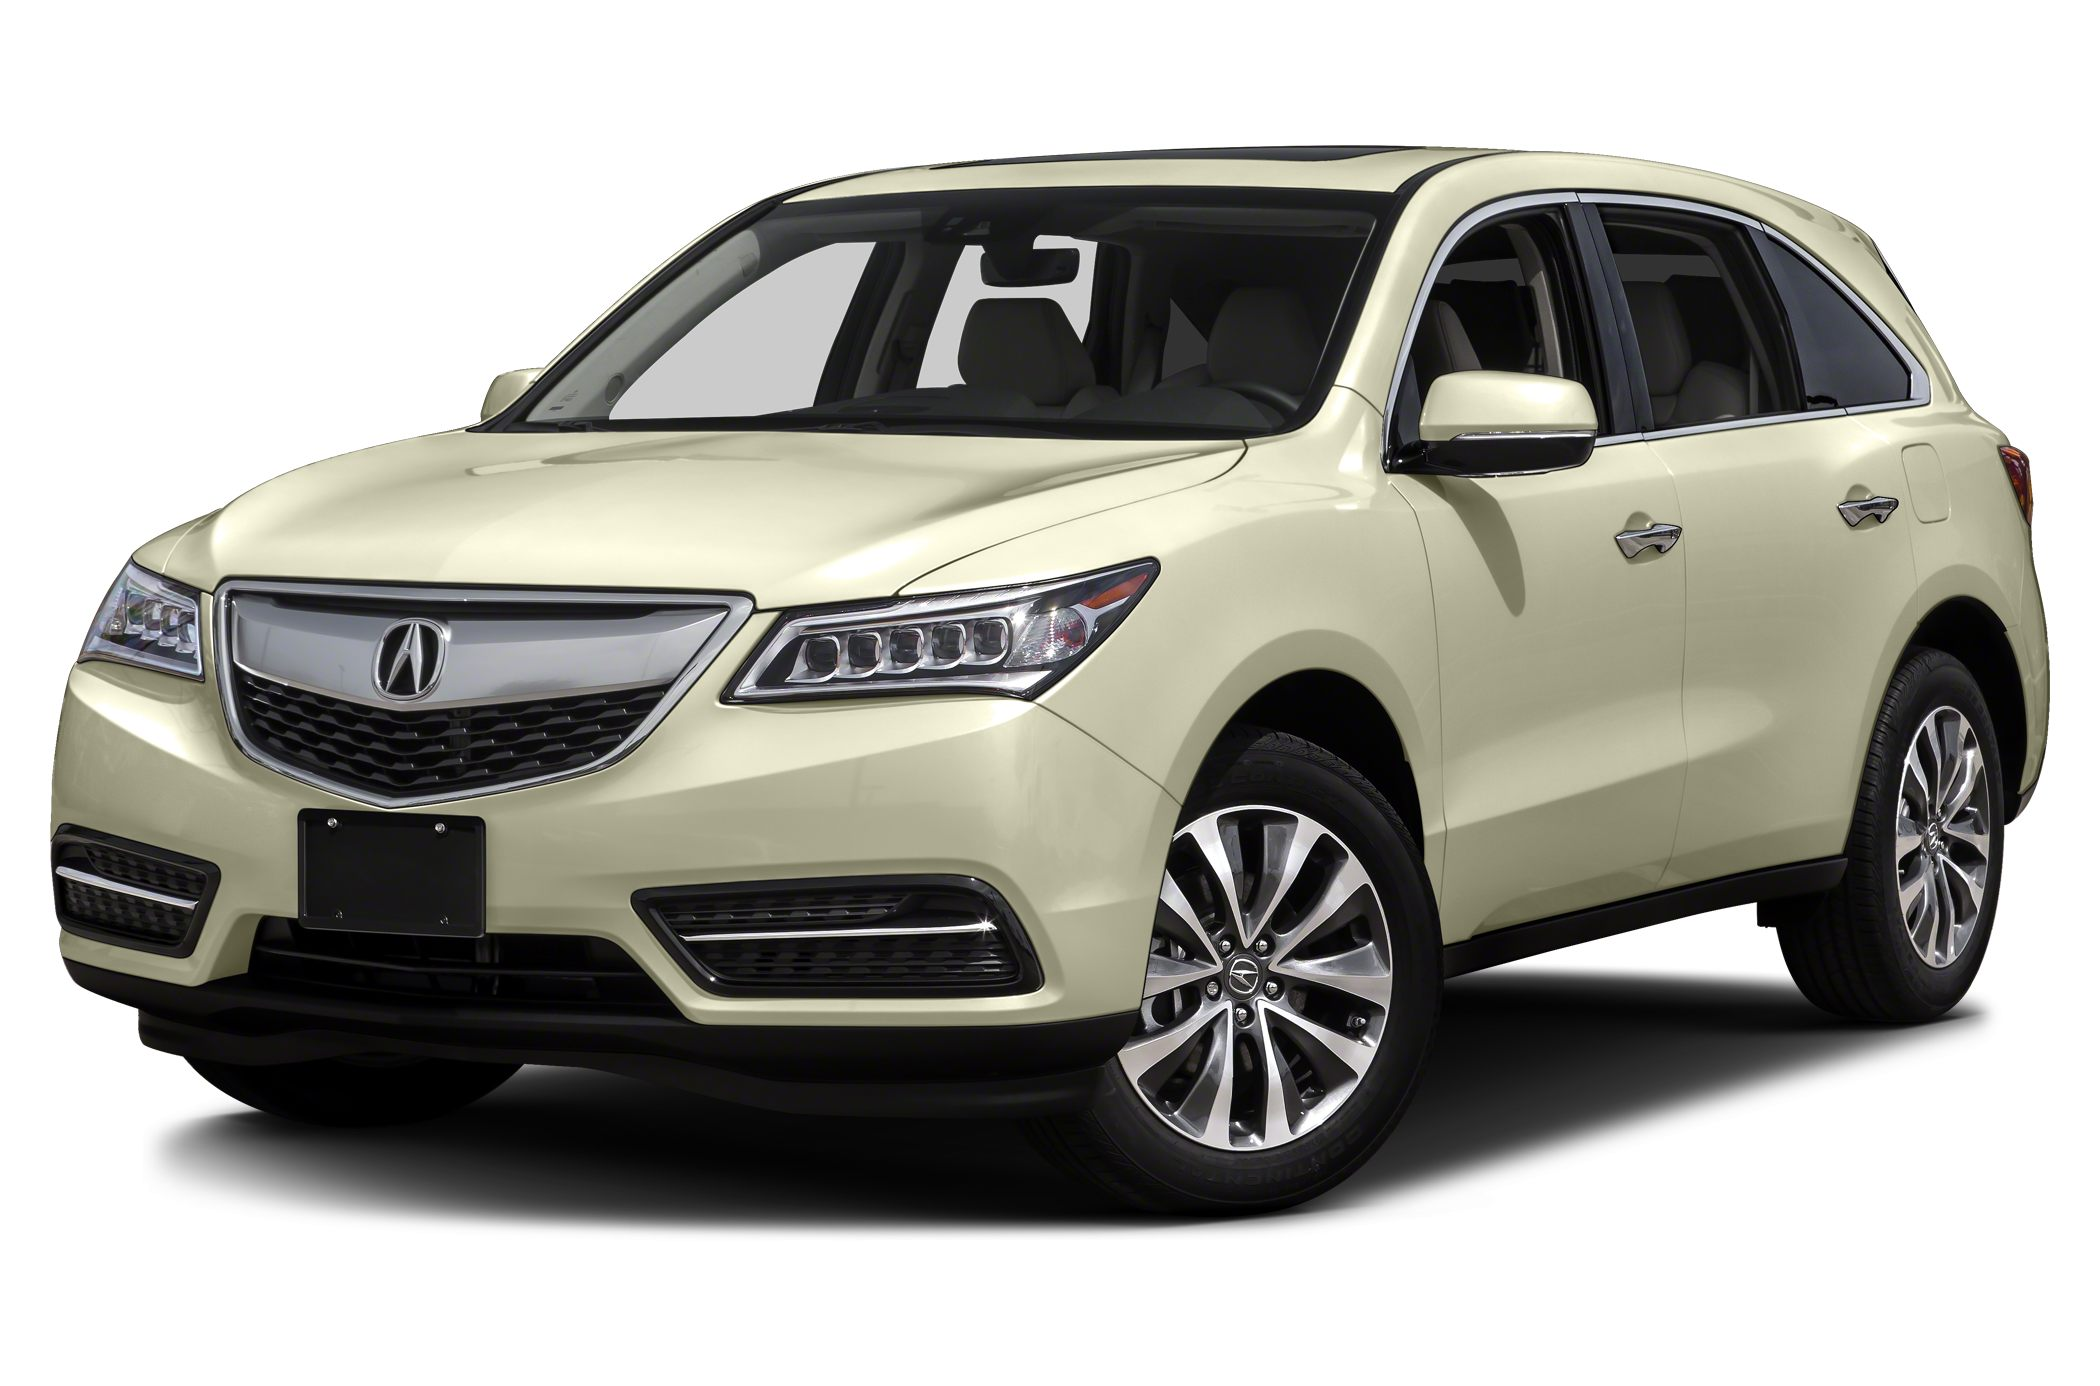 2016 Acura MDX 35 Clean Carfax One OwnerNavigation System w3D View Backup Camera Bluetooth